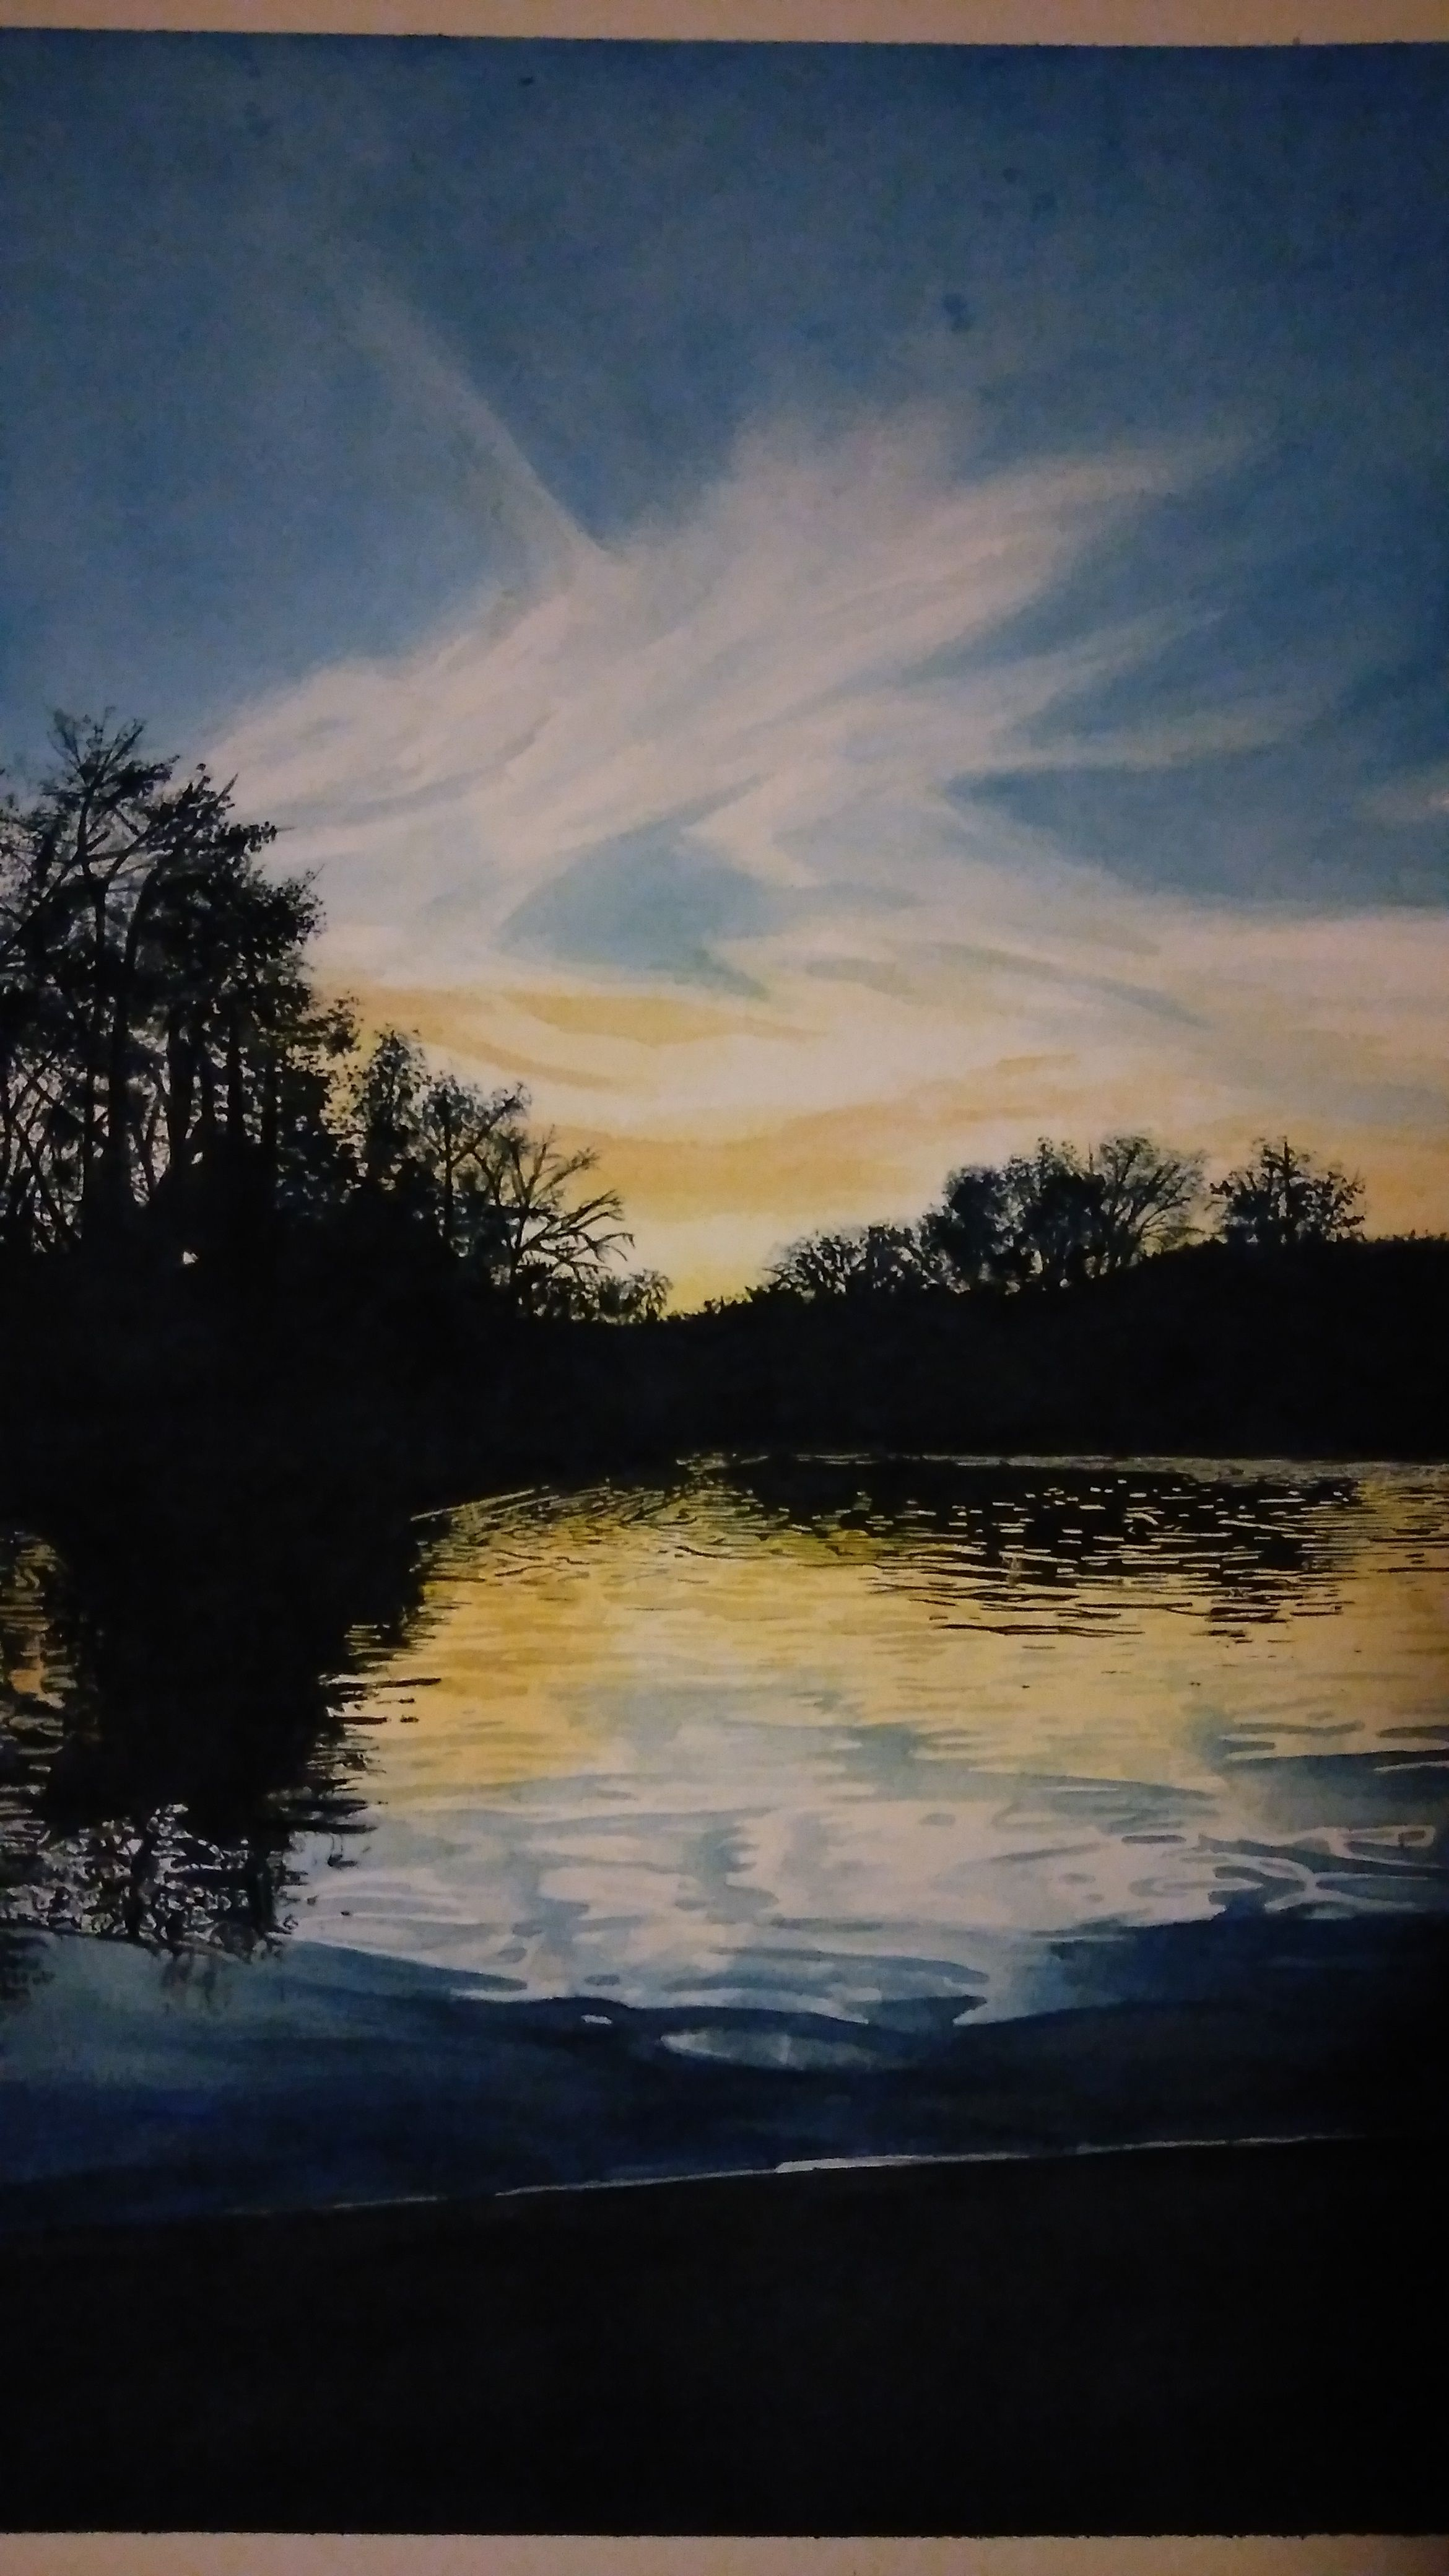 Original painting by Kyrie Davenport, watercolor painting of the frio river in Leakey texas